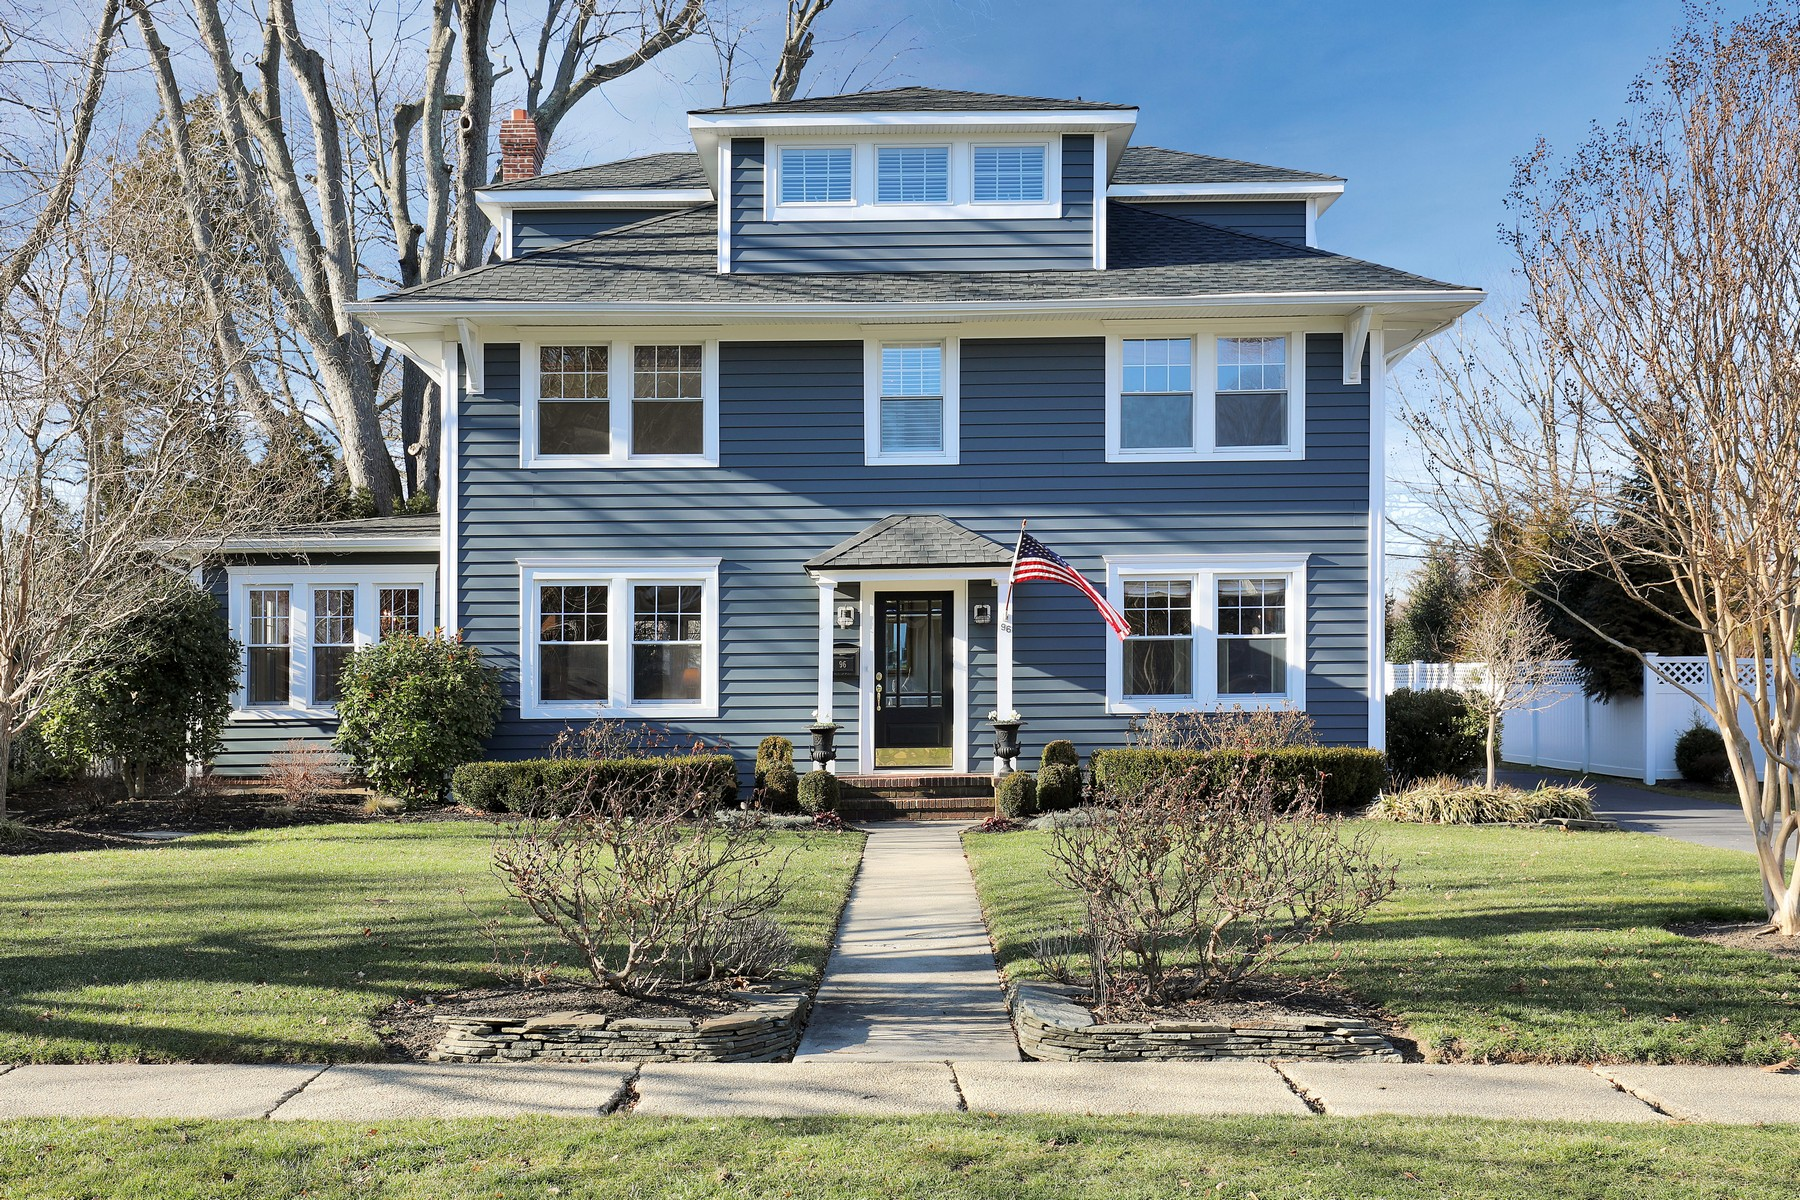 Single Family Home for Sale at 96 Harvard Road Fair Haven, New Jersey, 07704 United States